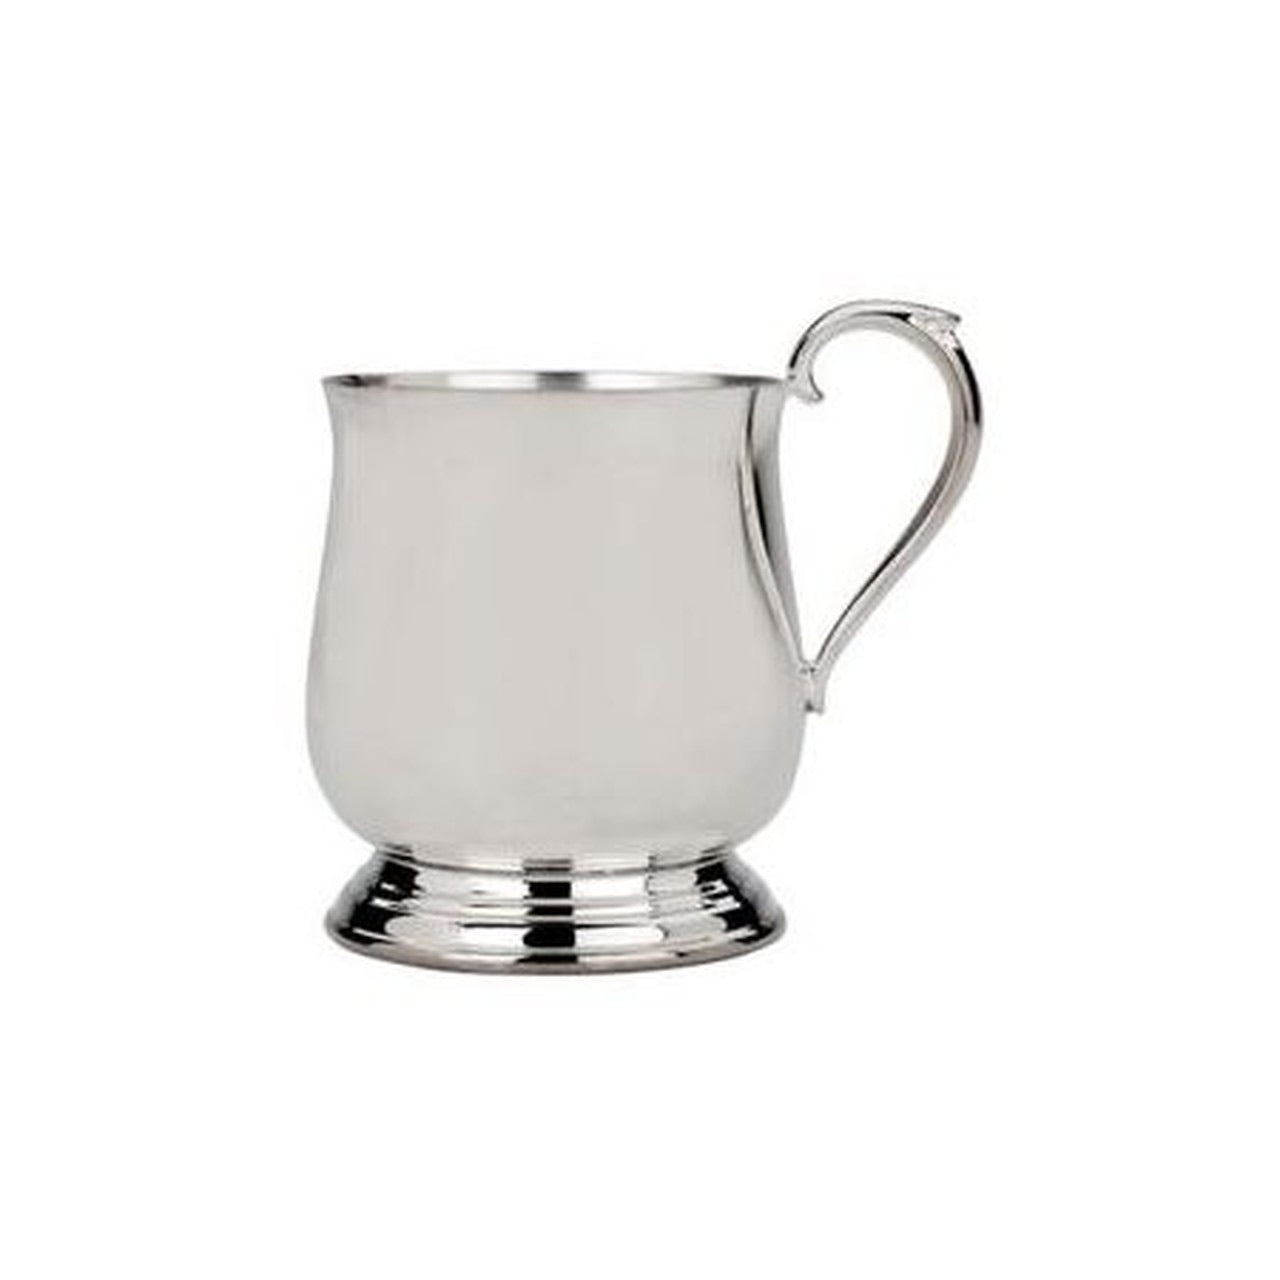 Reed & Barton - Revere Child Cup With Pedestal Base